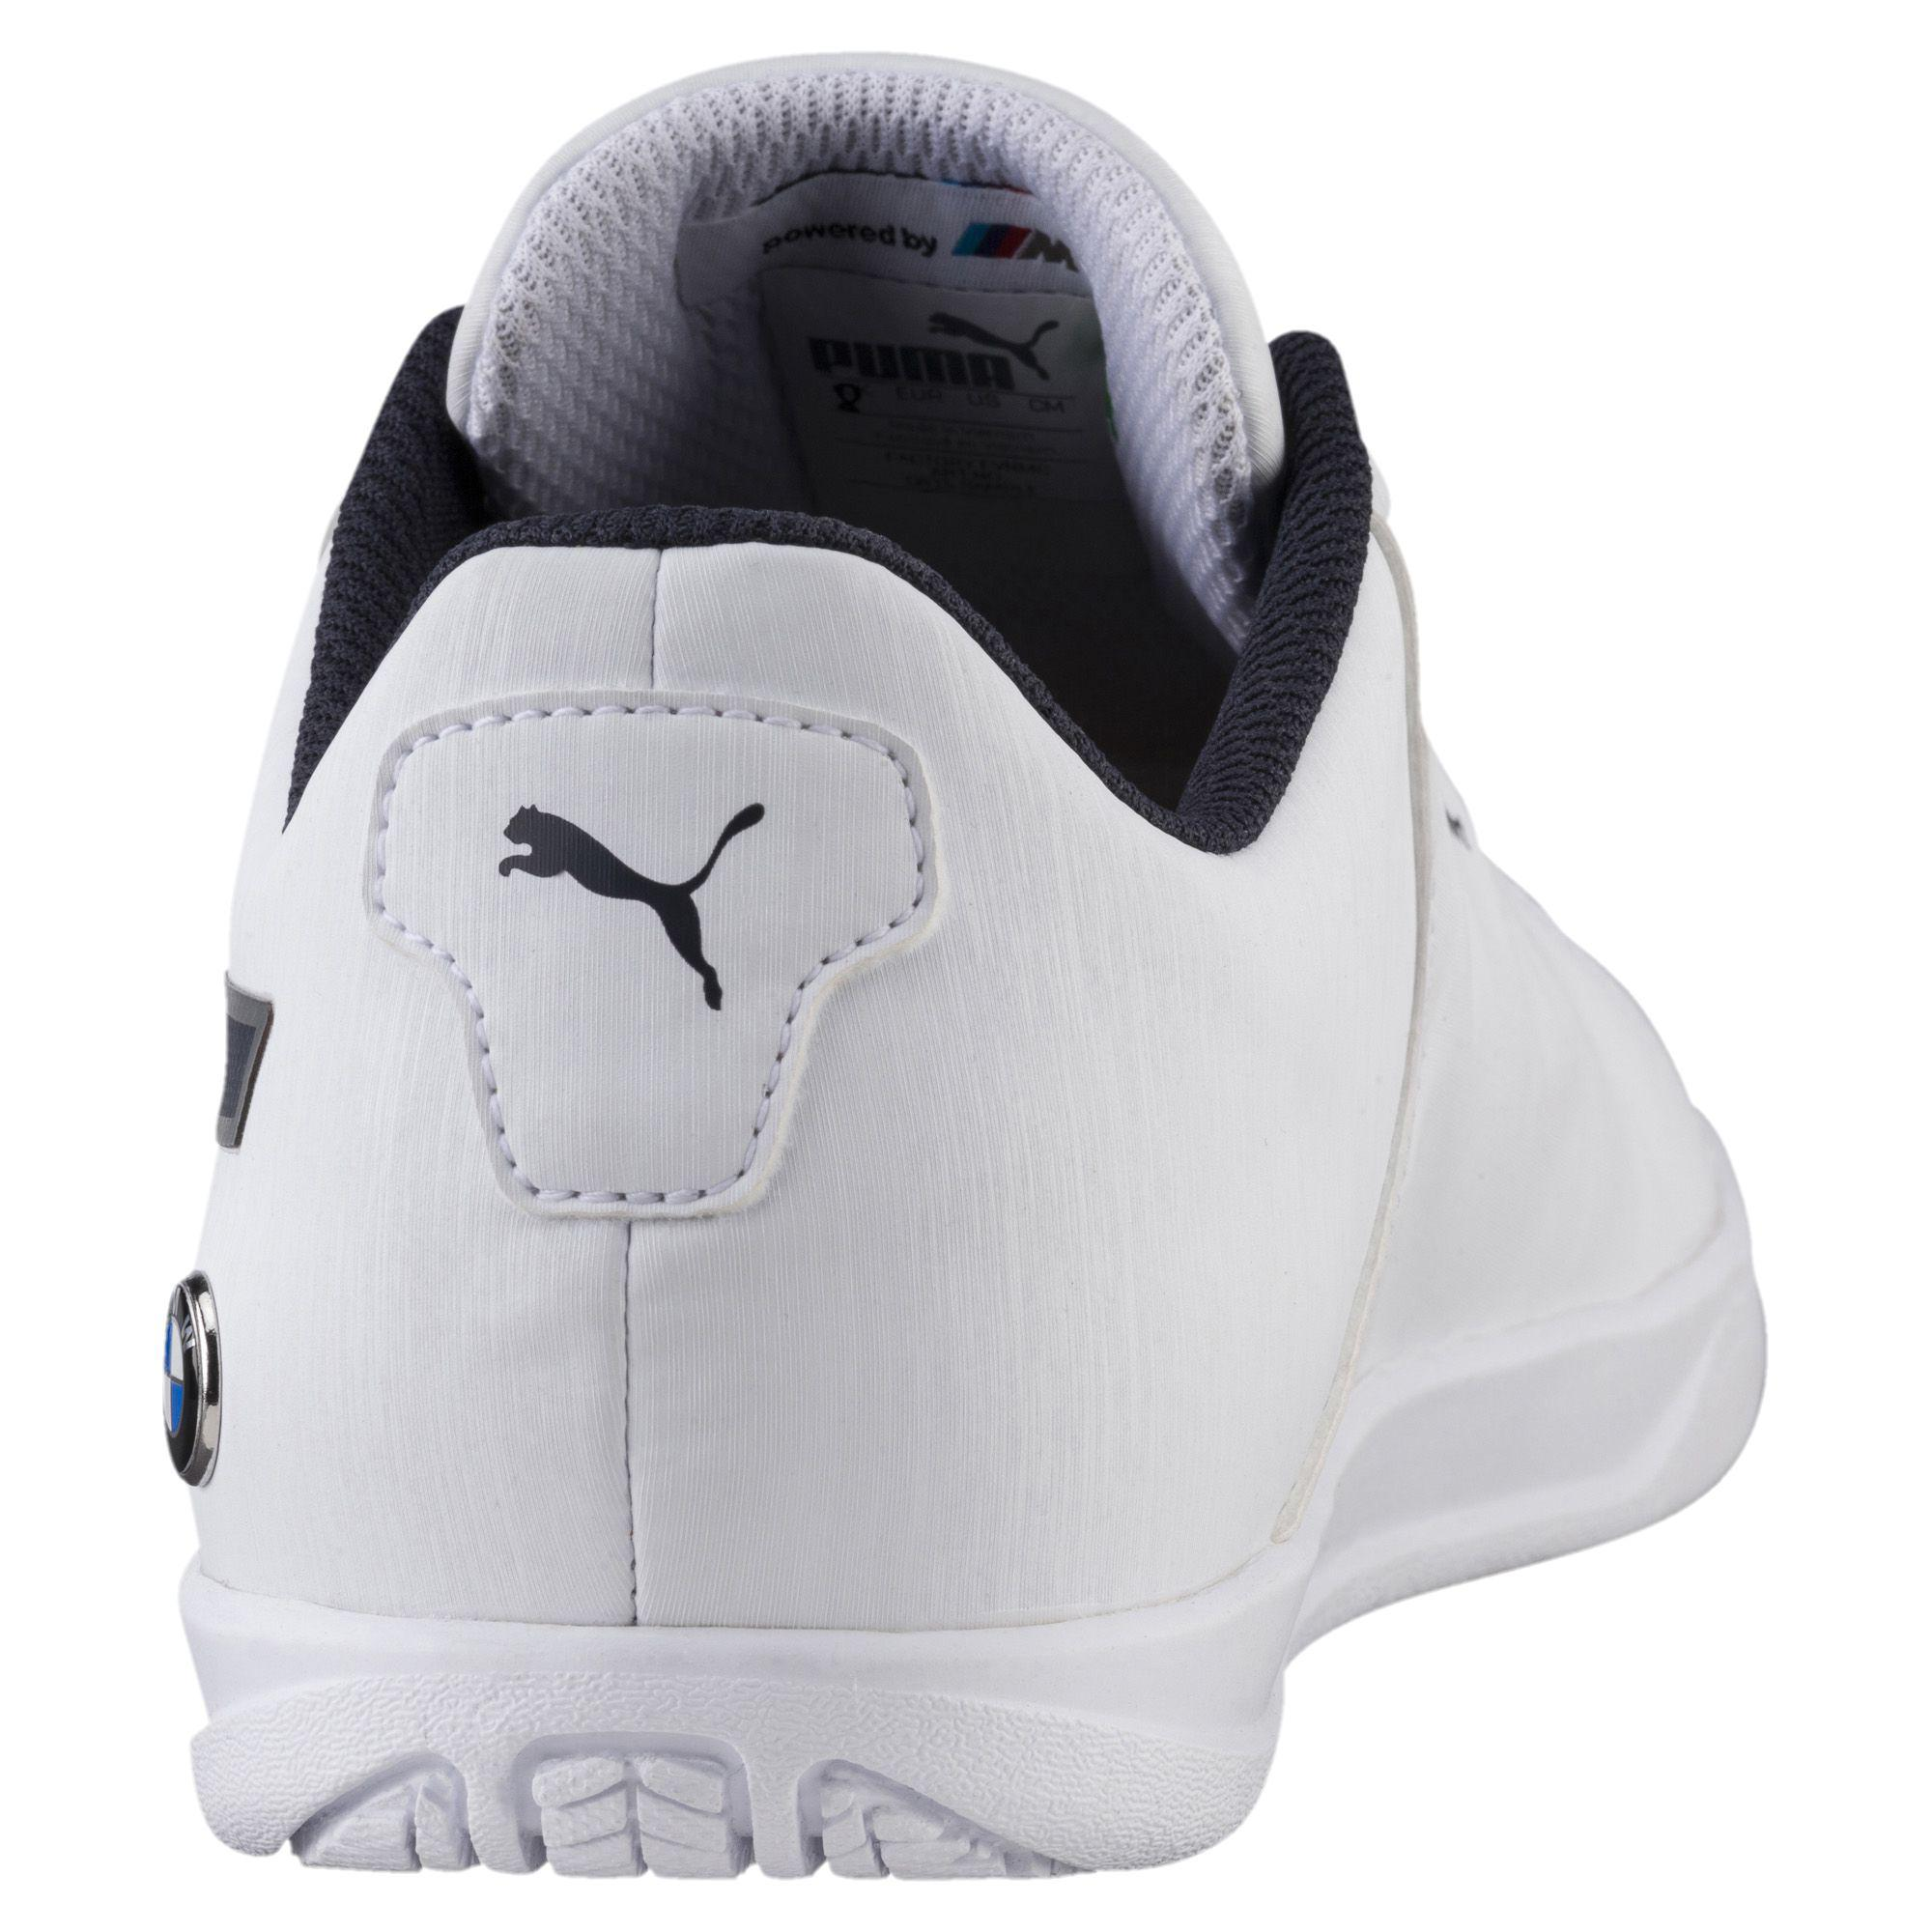 7355b1a5710d96 Lyst - PUMA Bmw Ms Court Men s Shoes in White for Men